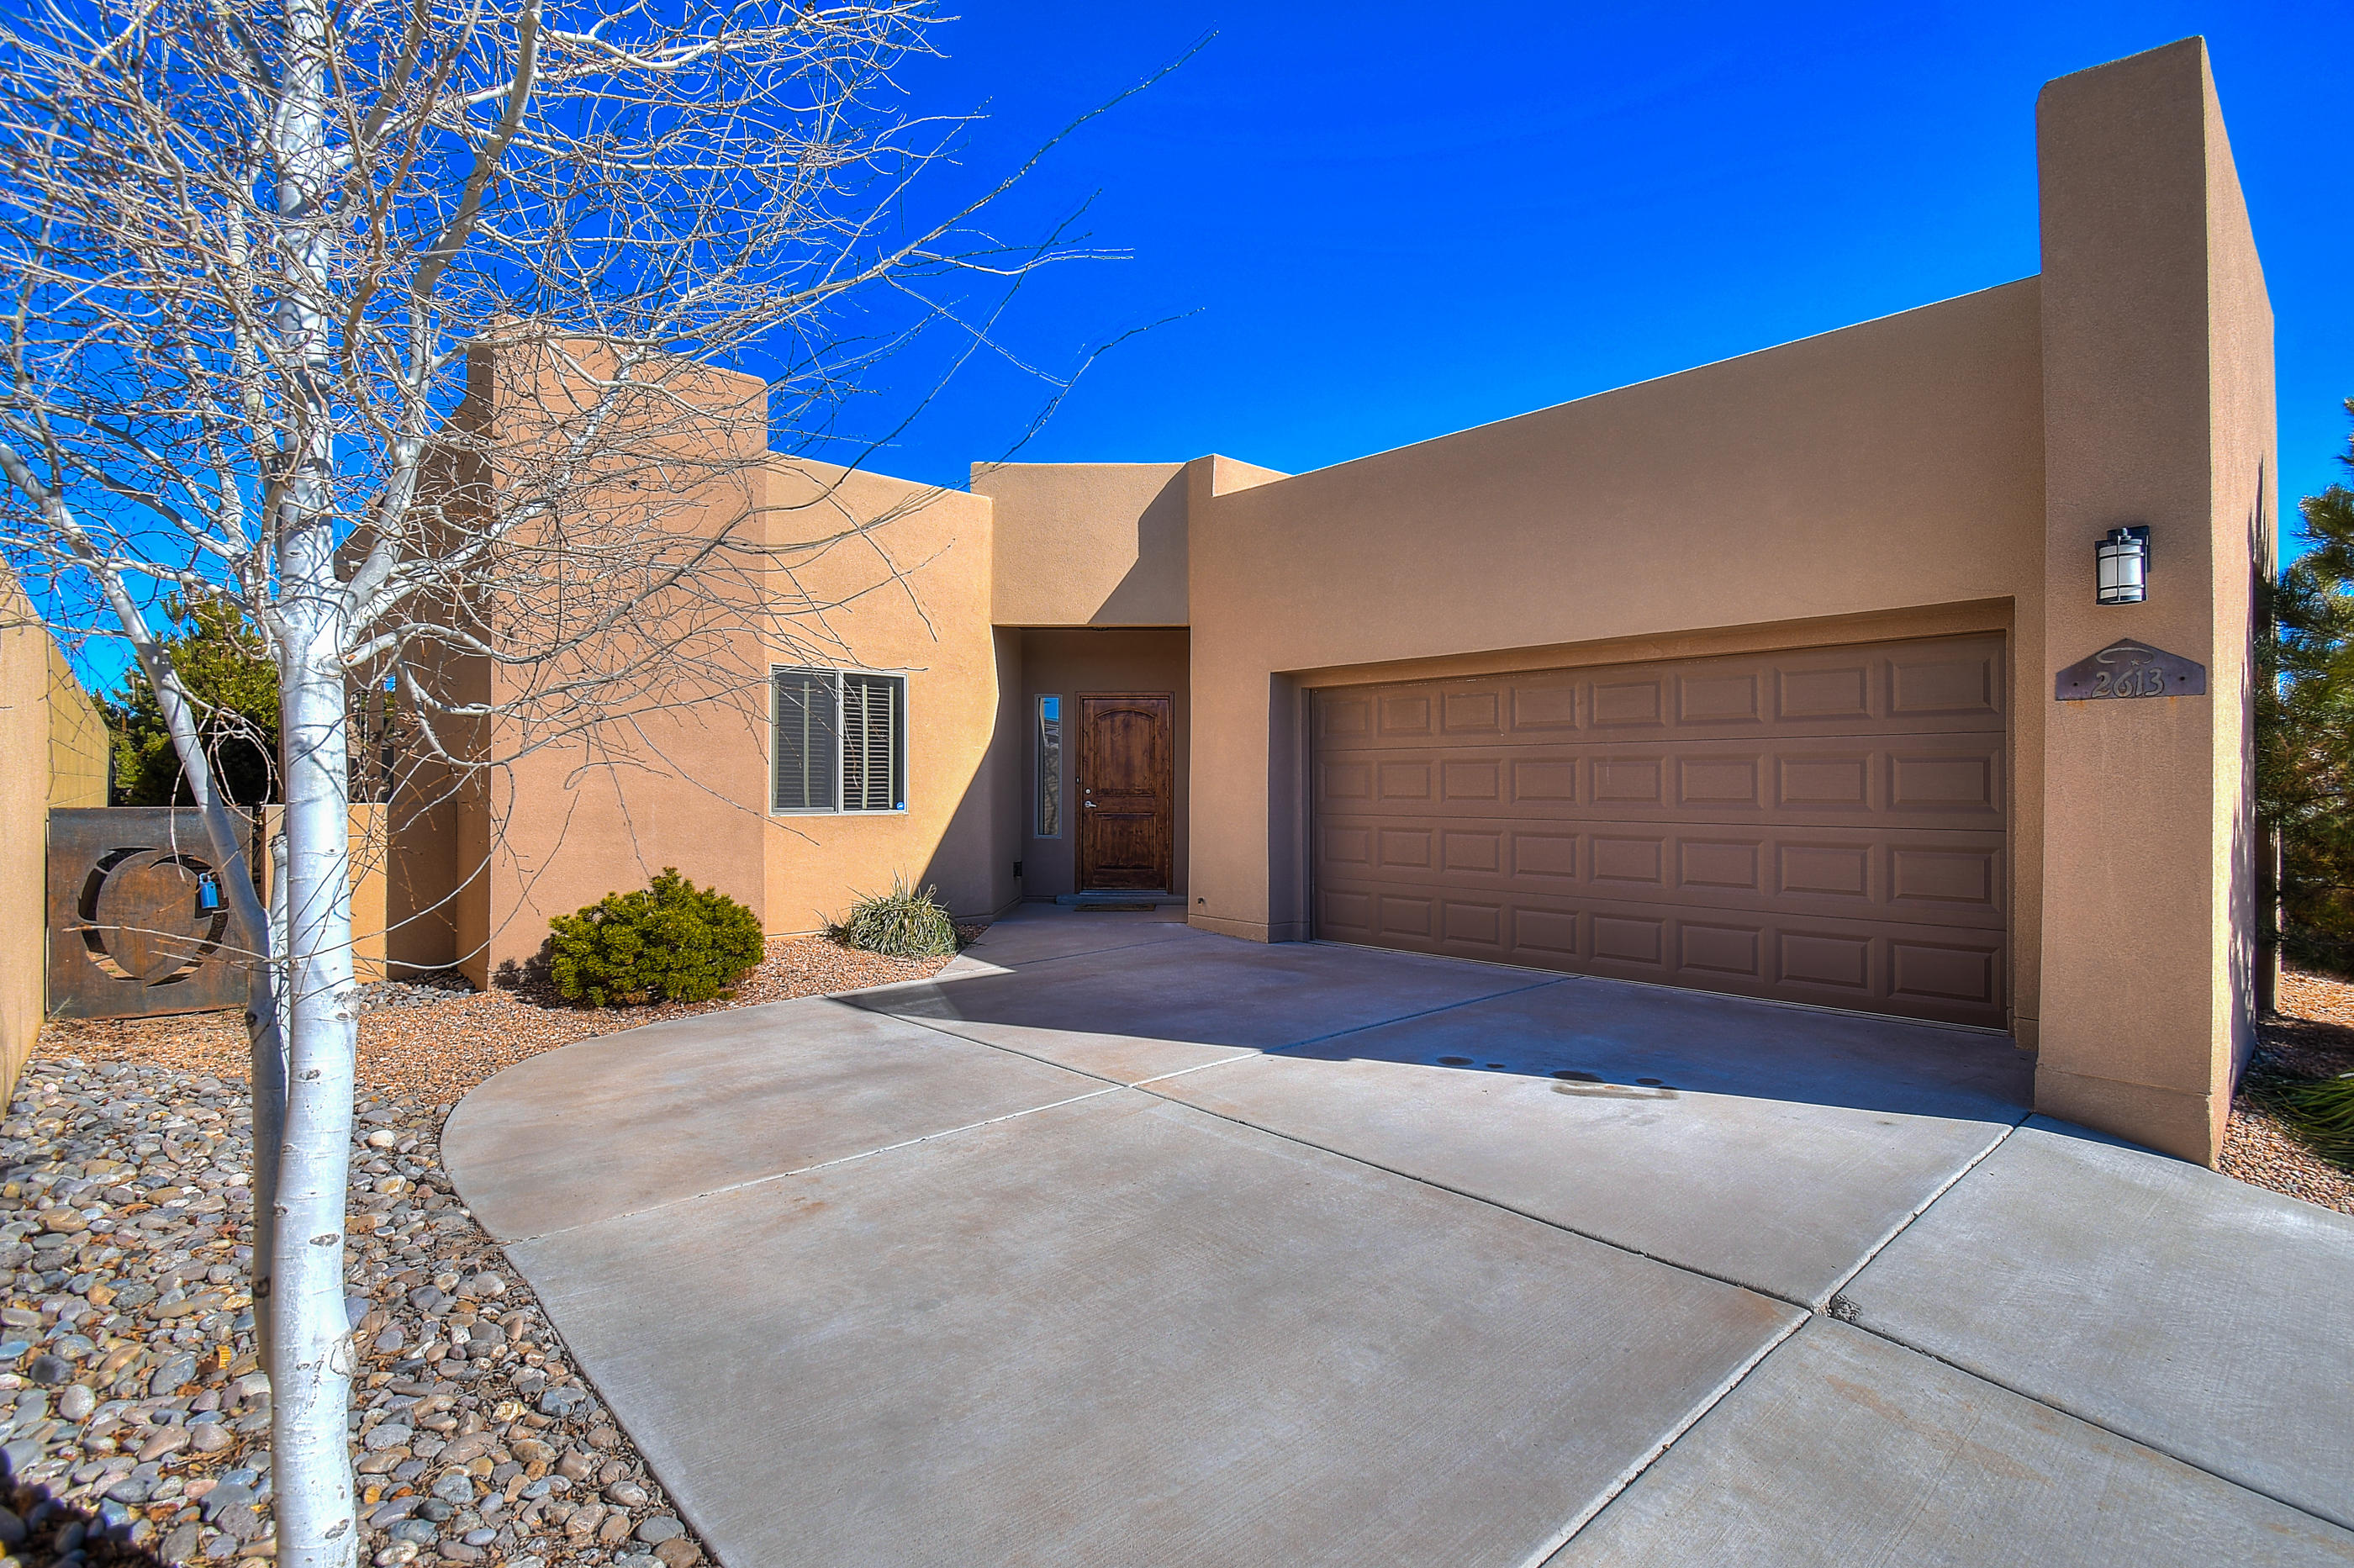 One of Rio Rancho 3 Bedroom Homes for Sale at 2613 NE Redondo Santa Fe Loop